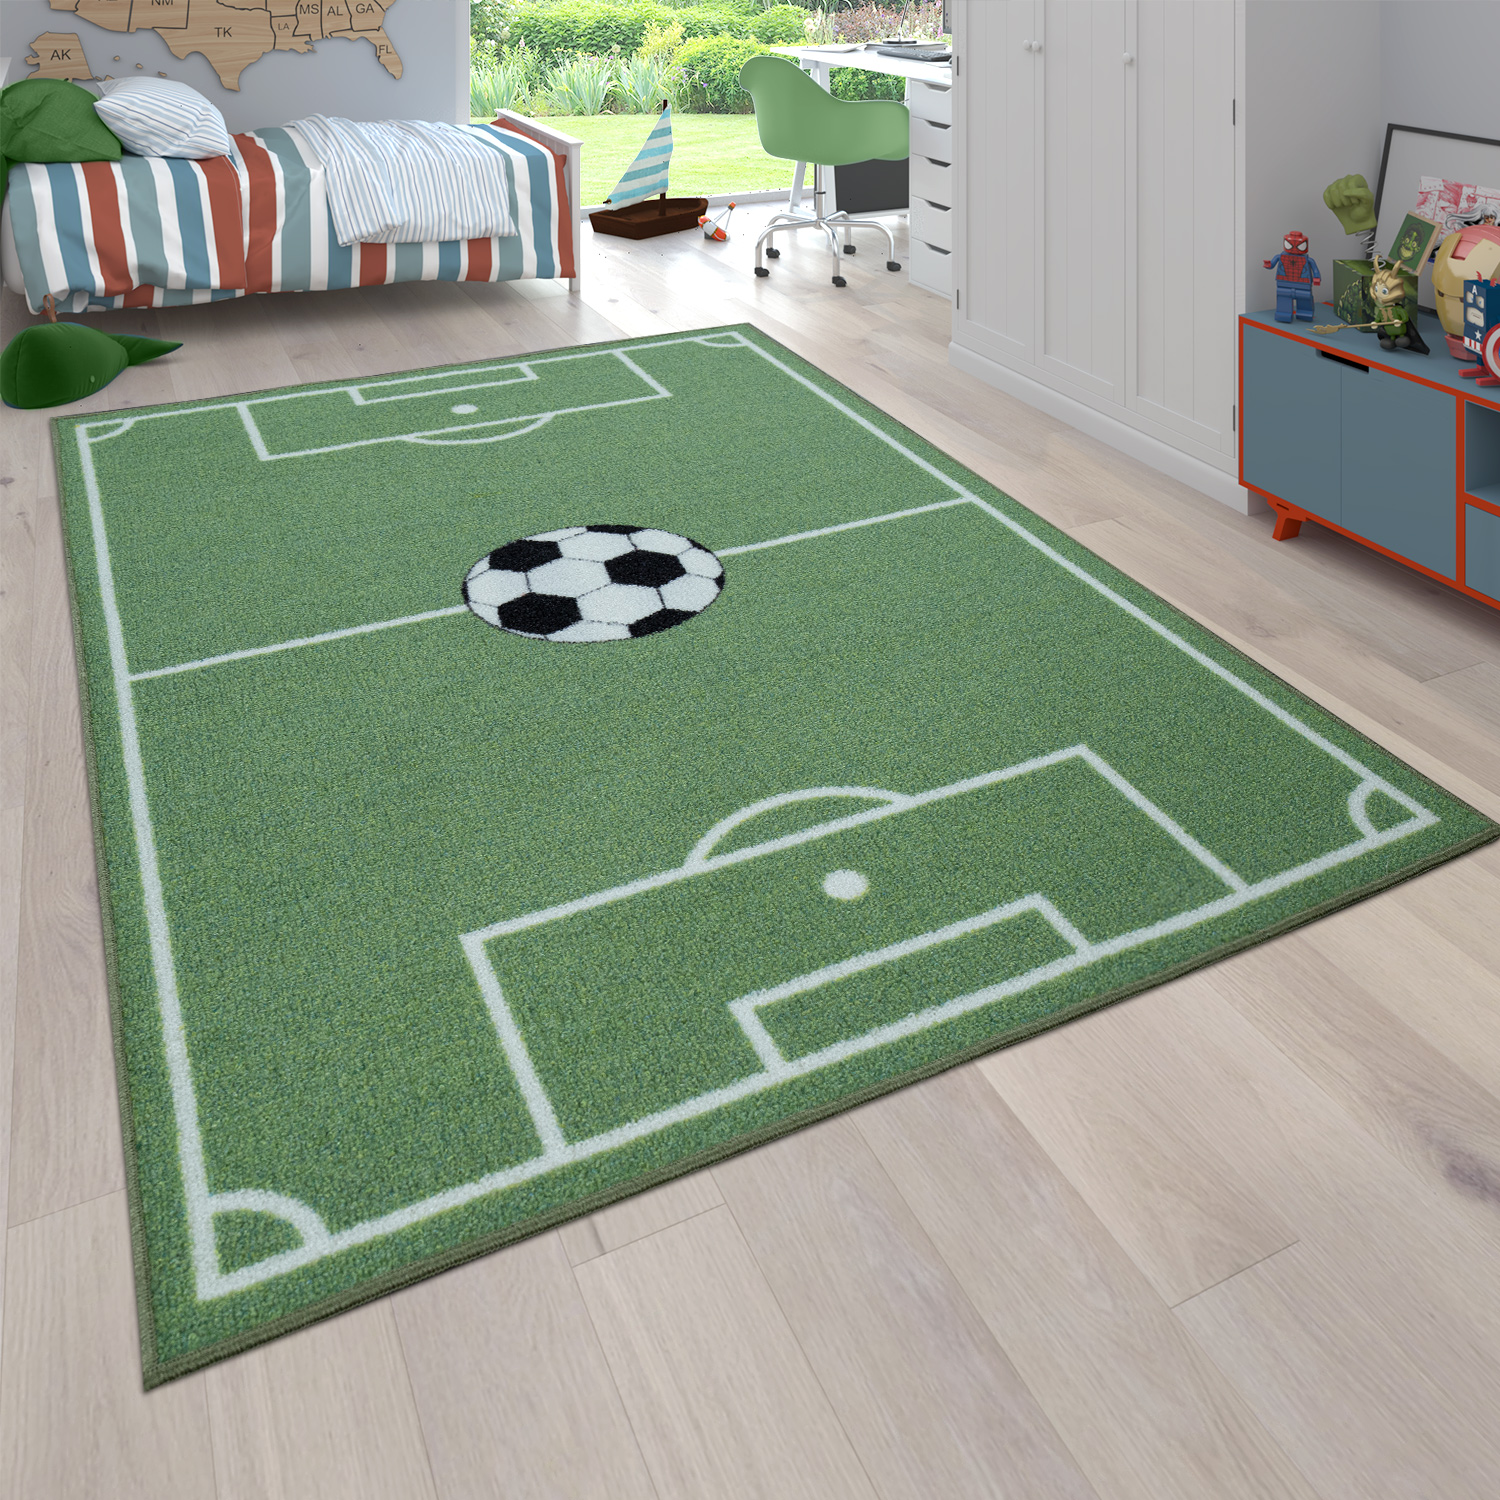 Children's Rug, Play Rug For Child's Room With Football Design, In Green